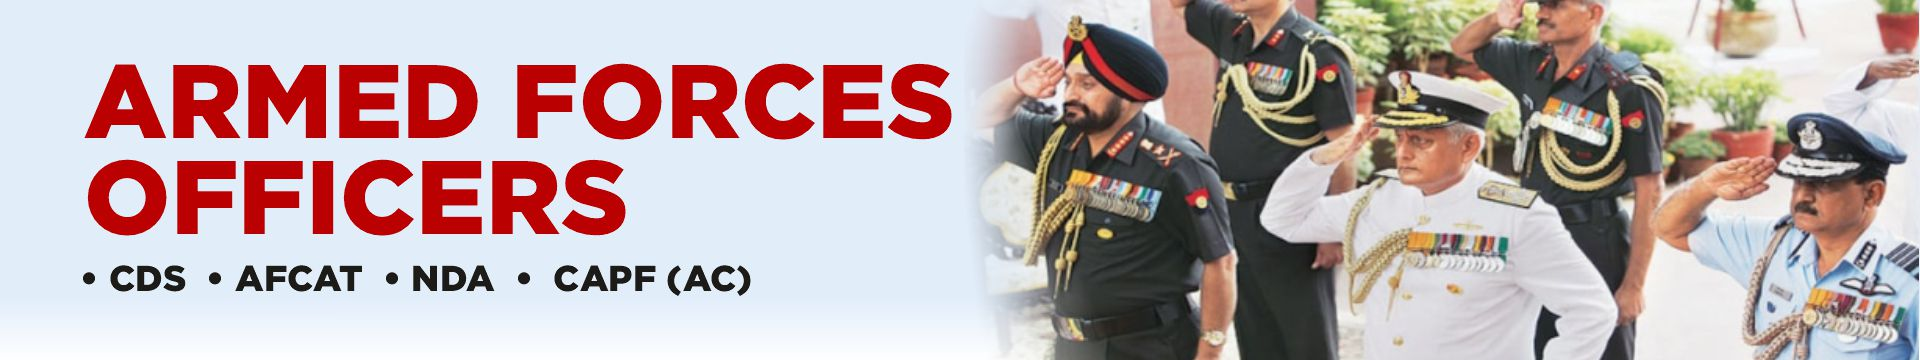 Armed Forces Officers